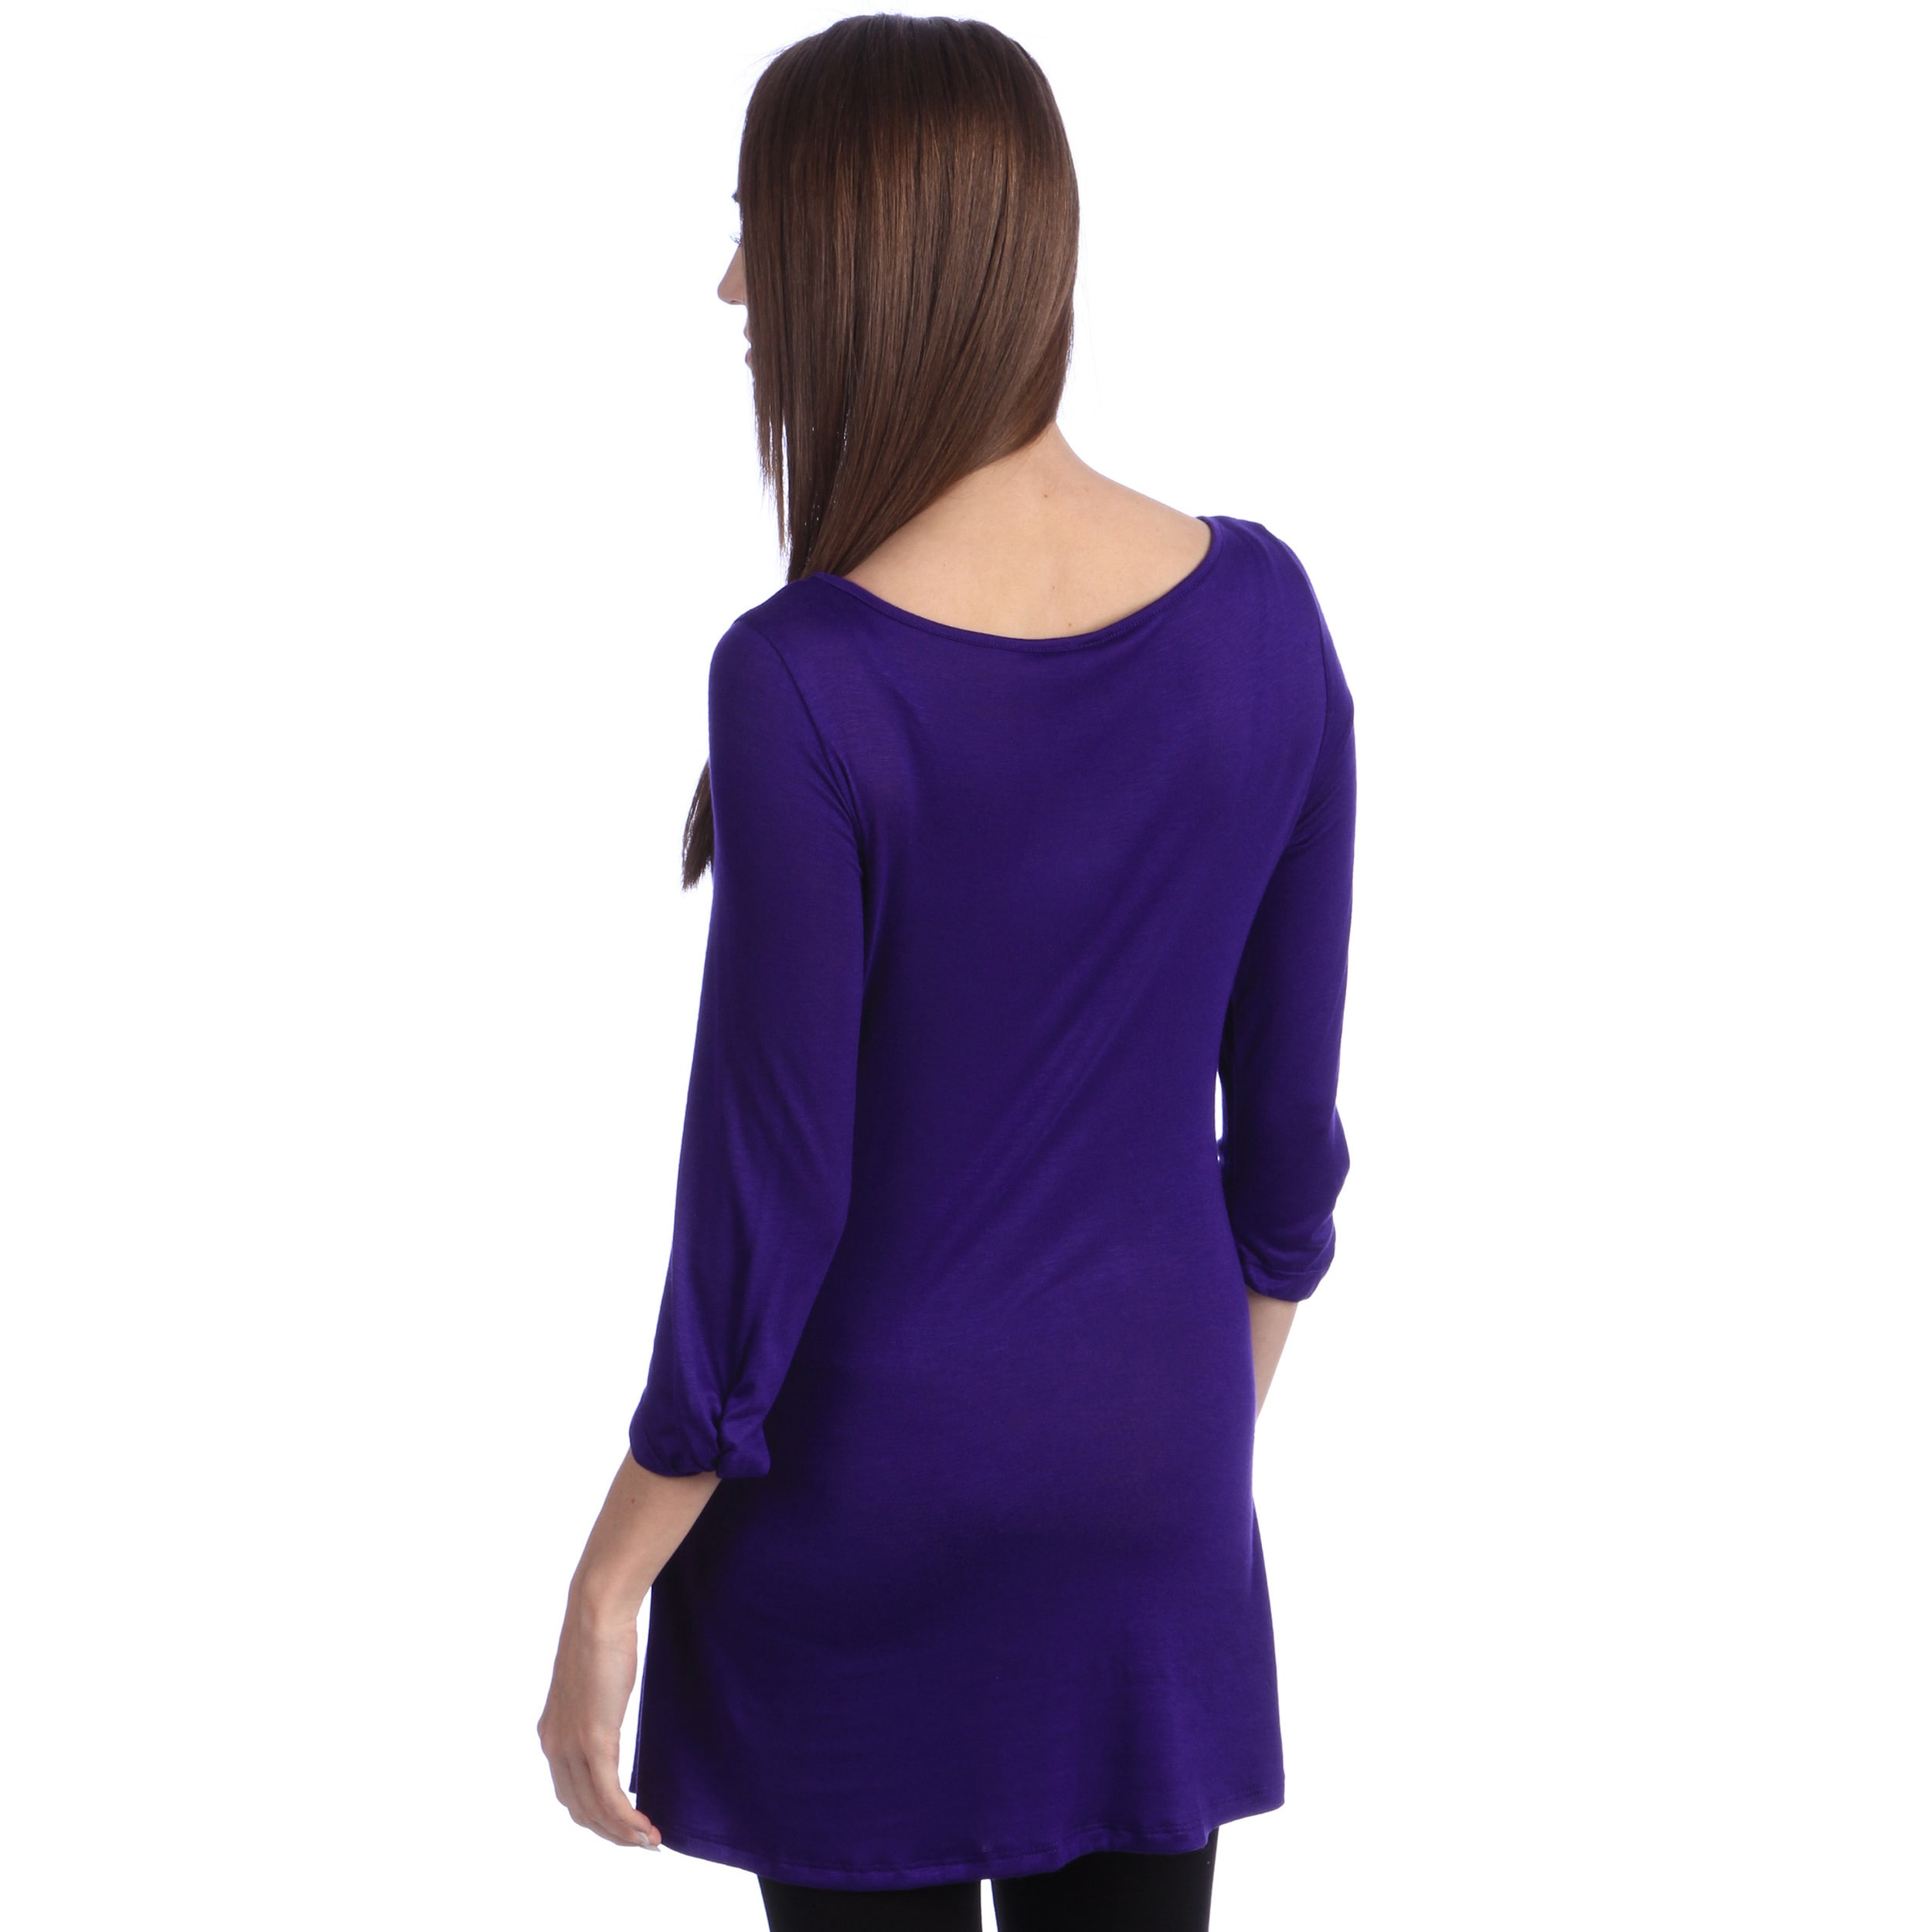 20a59b94343 Shop 24/7 Comfort Apparel Women's Elbow Sleeve Tunic Top - On Sale - Free  Shipping On Orders Over $45 - Overstock - 7753190